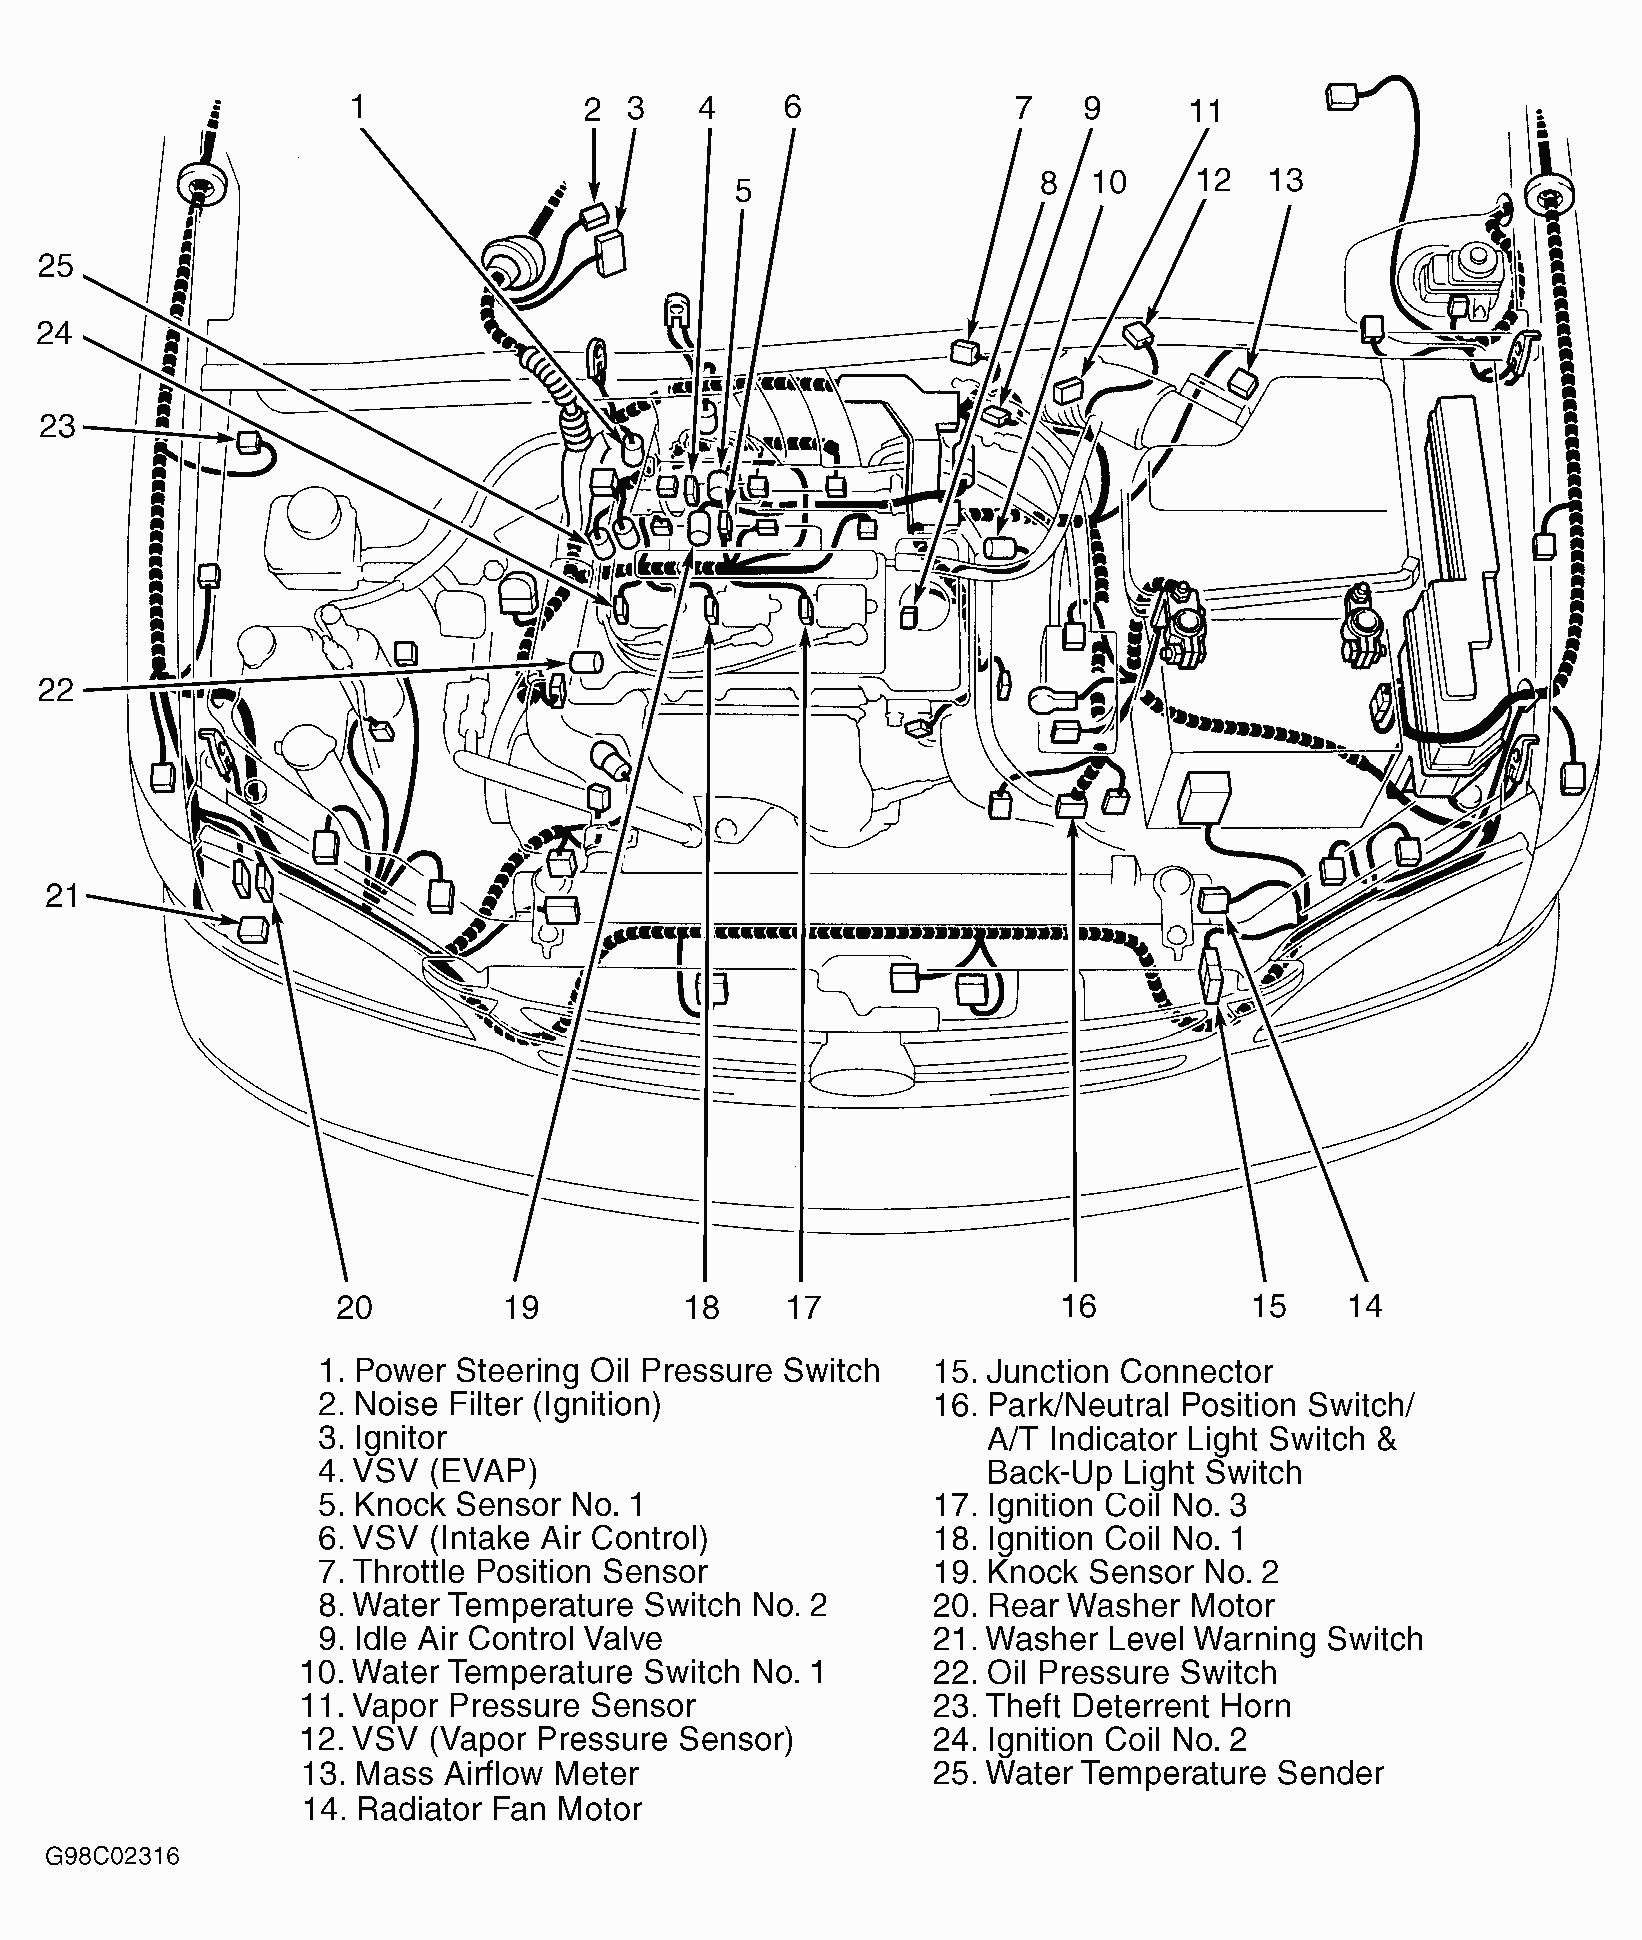 Toyota Avensis Engine Diagram 98 toyota Ta A Wiring Diagram toyota Wiring Diagrams Instructions Of Toyota Avensis Engine Diagram